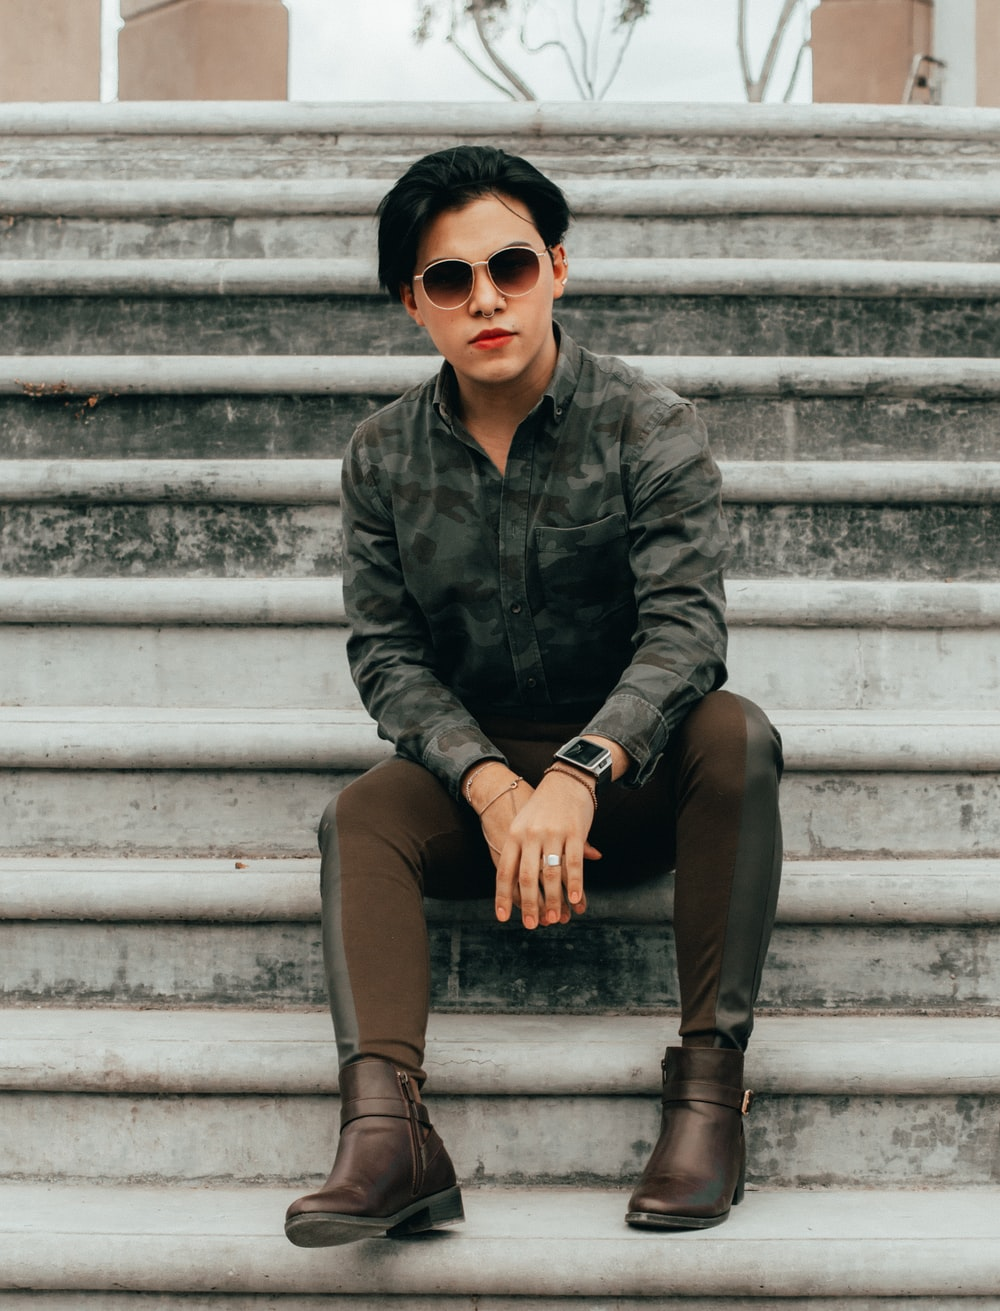 man in black leather jacket and brown pants wearing black sunglasses sitting on white concrete stairs